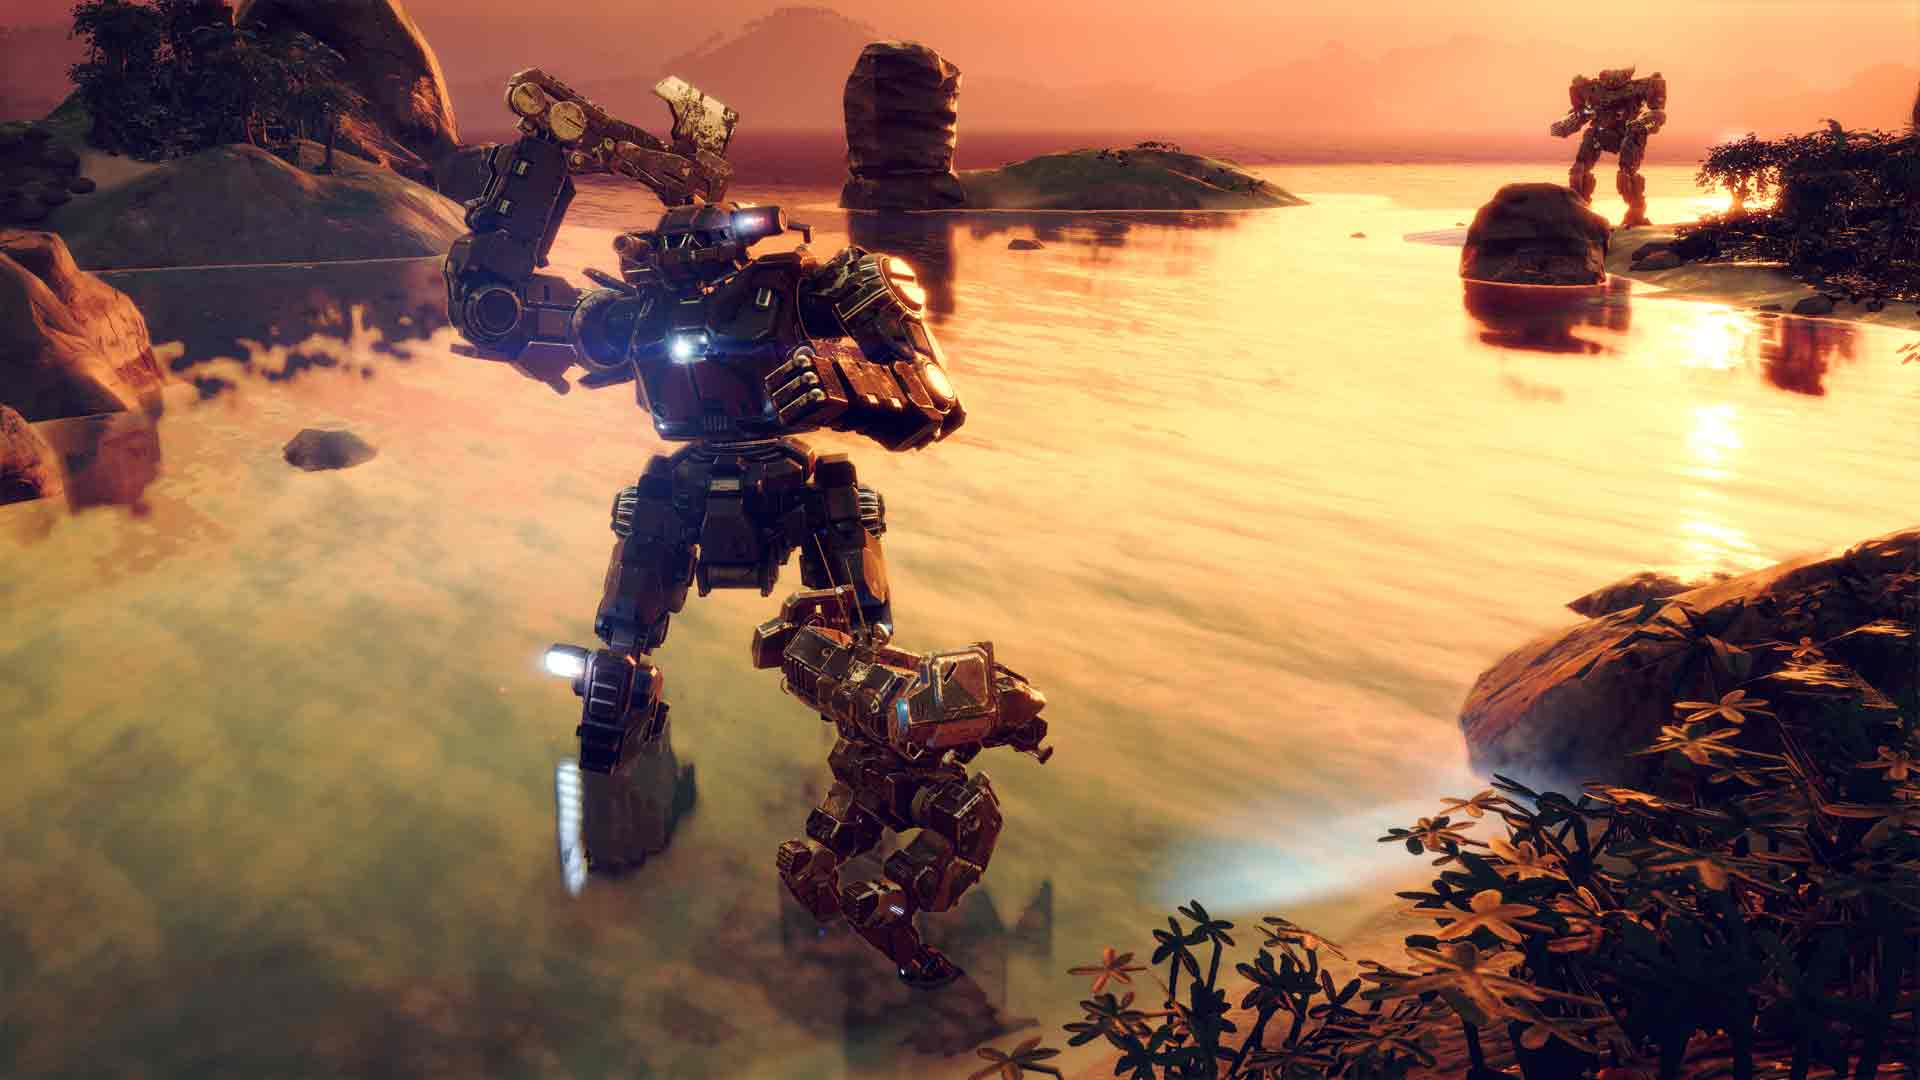 BATTLETECH Flashpoint game image